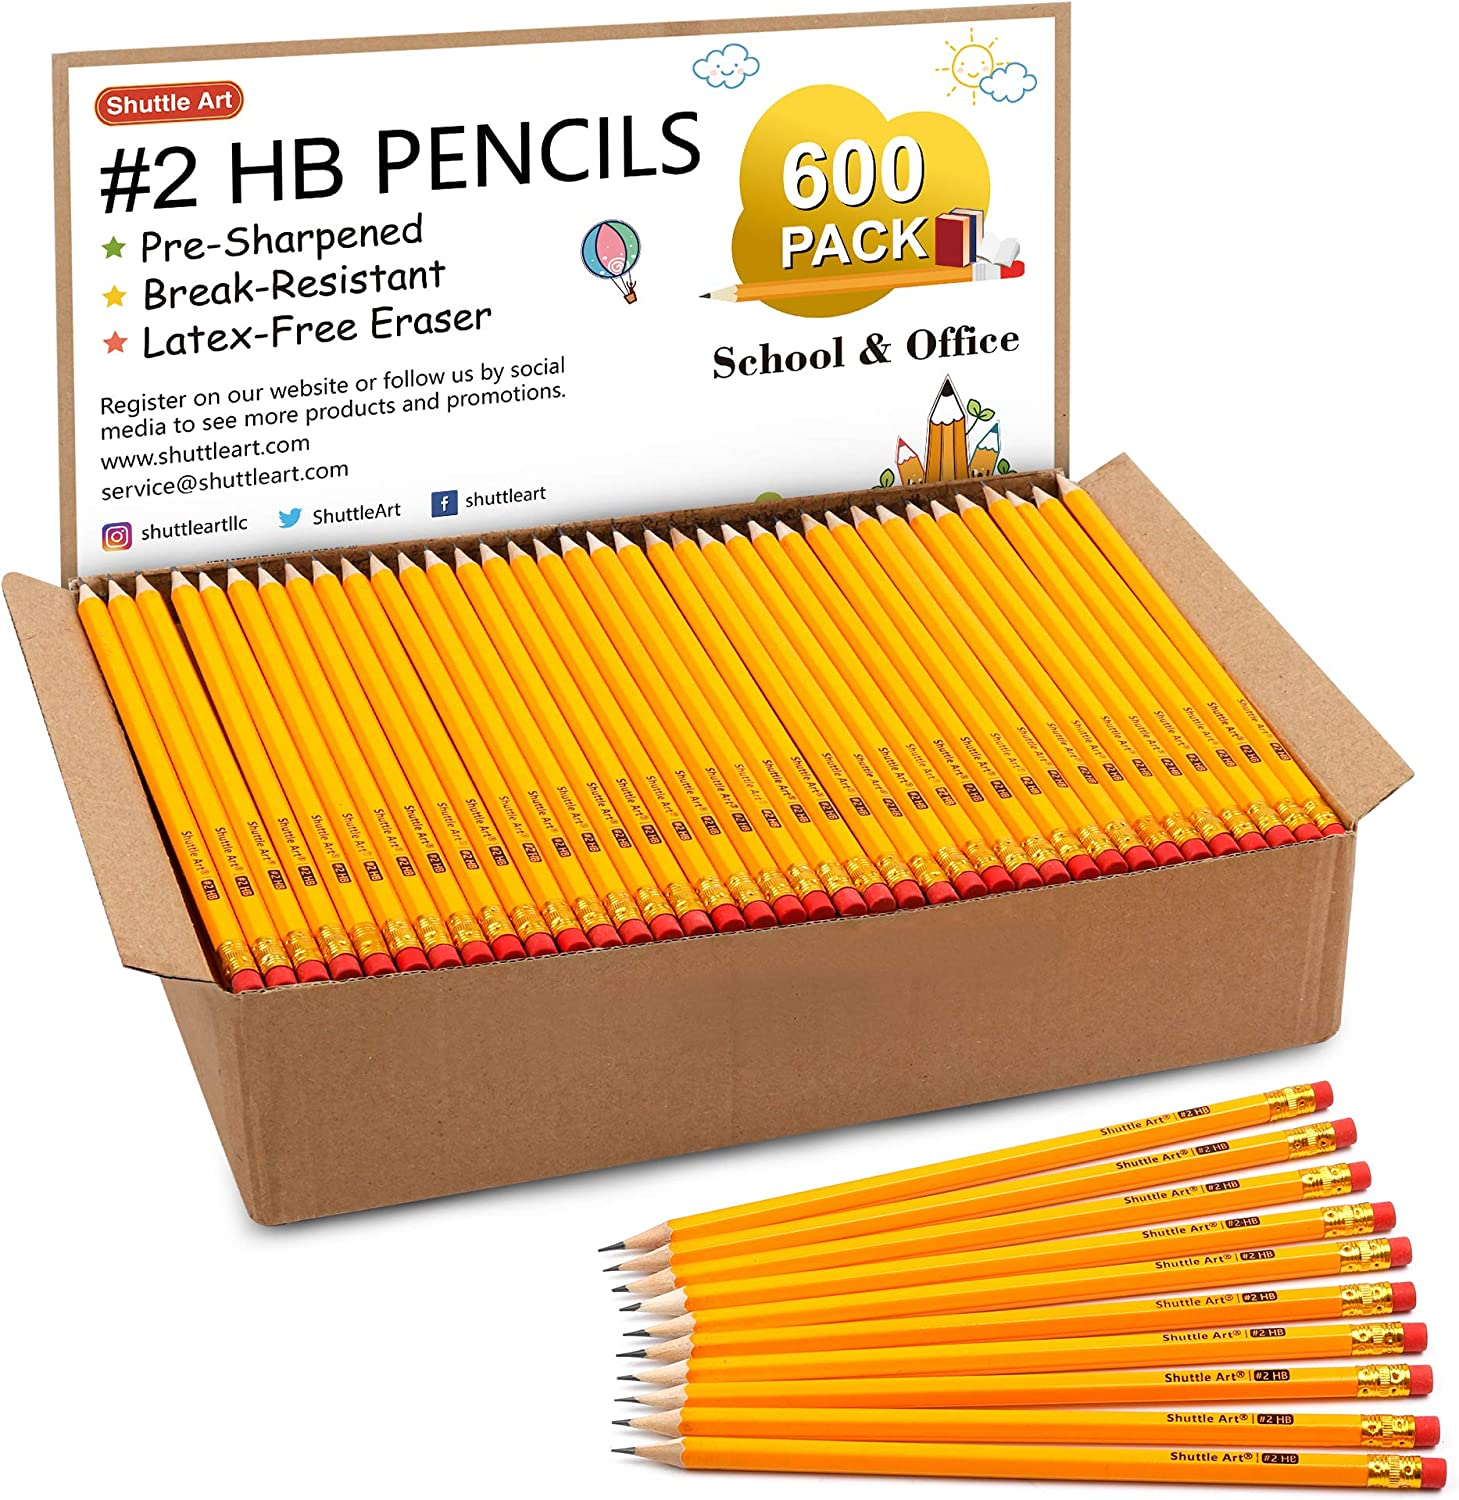 Wood-Cased #2 HB Pencils, Shuttle Art 600 Pack Sharpened Yellow Pencils with Erasers, Bulk Pack Graphite Pencils for School and Teacher Supplies, Writhing, Drawing and Sketching